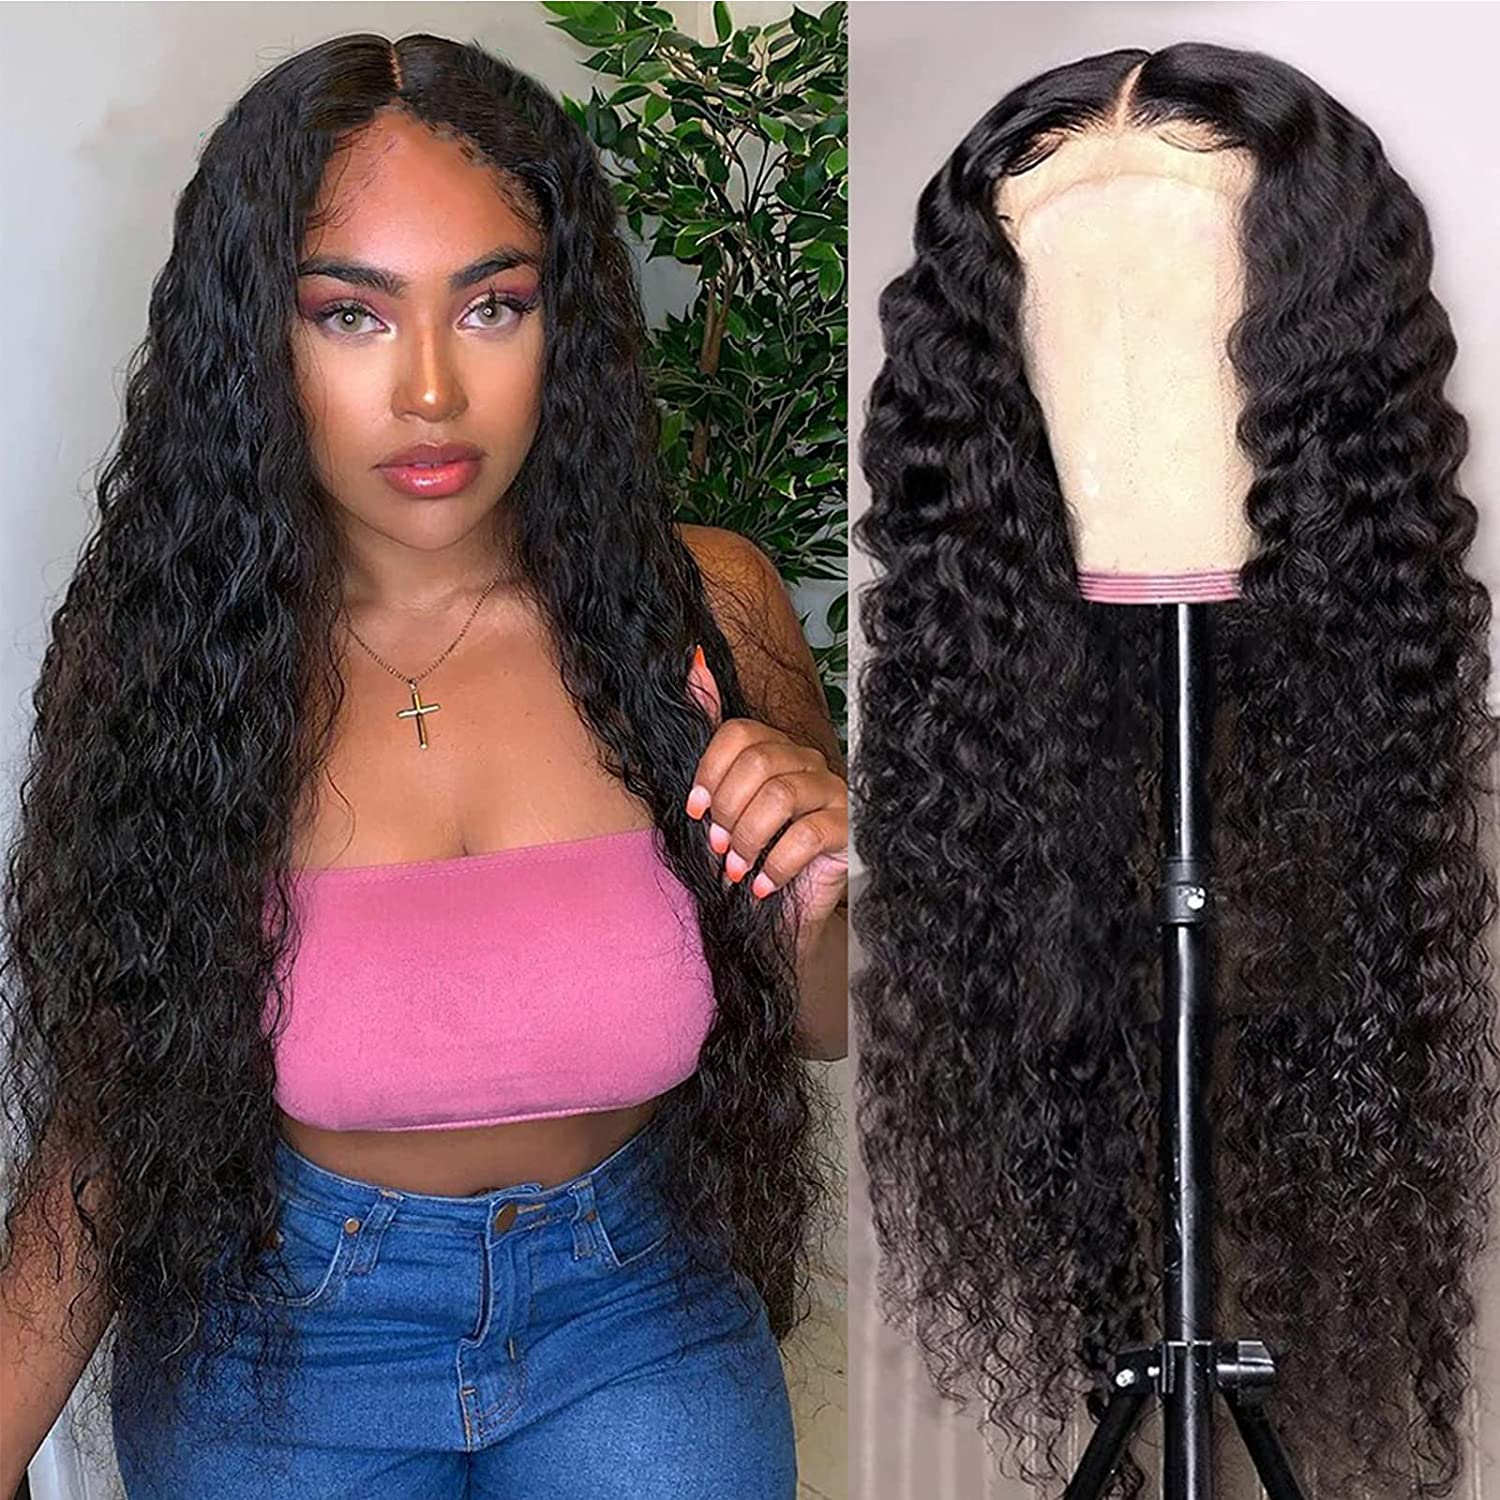 28 Inch Lace Front Wigs Human Hair Wig Wave List price Bra 4×4 Chicago Mall Closure Deep